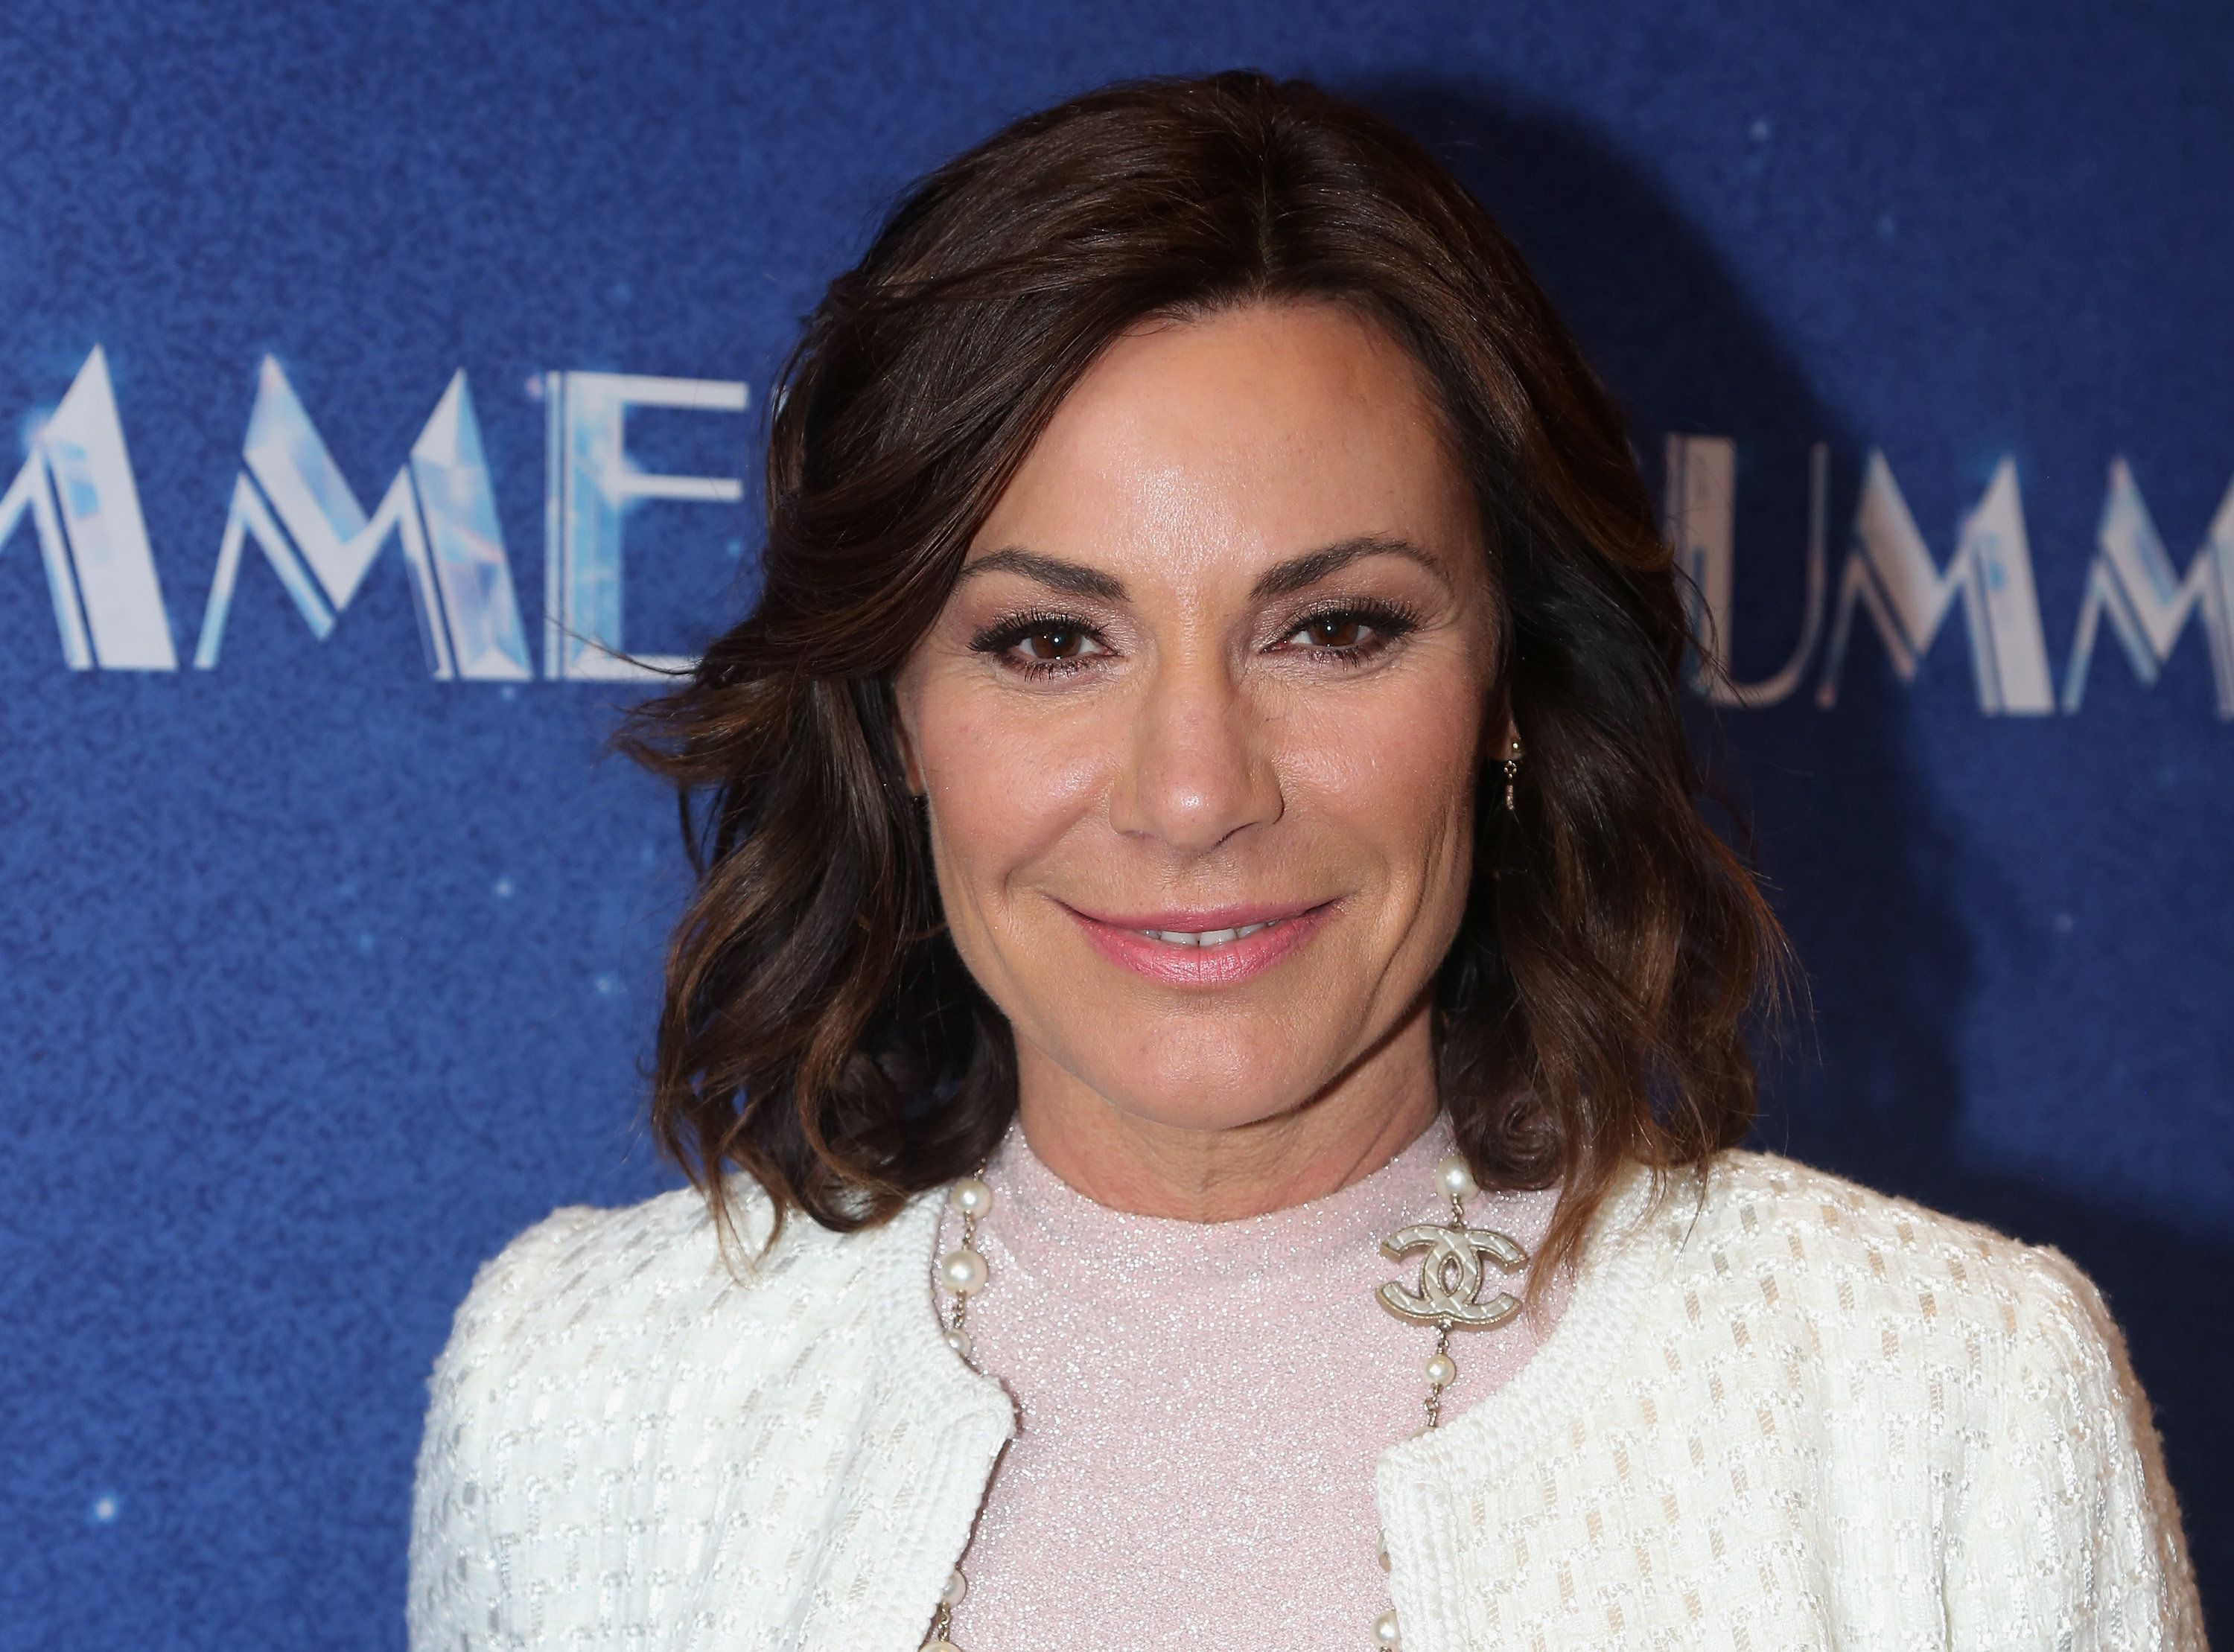 NEW YORK, NY - APRIL 23:  LuAnn de Lesseps poses at the opening night of 'Summer: The Donna Summer Musical' on Broadway at The Lunt-Fontanne Theatre on April 23, 2018 in New York City.  (Photo by Bruce Glikas/Bruce Glikas/FilmMagic)